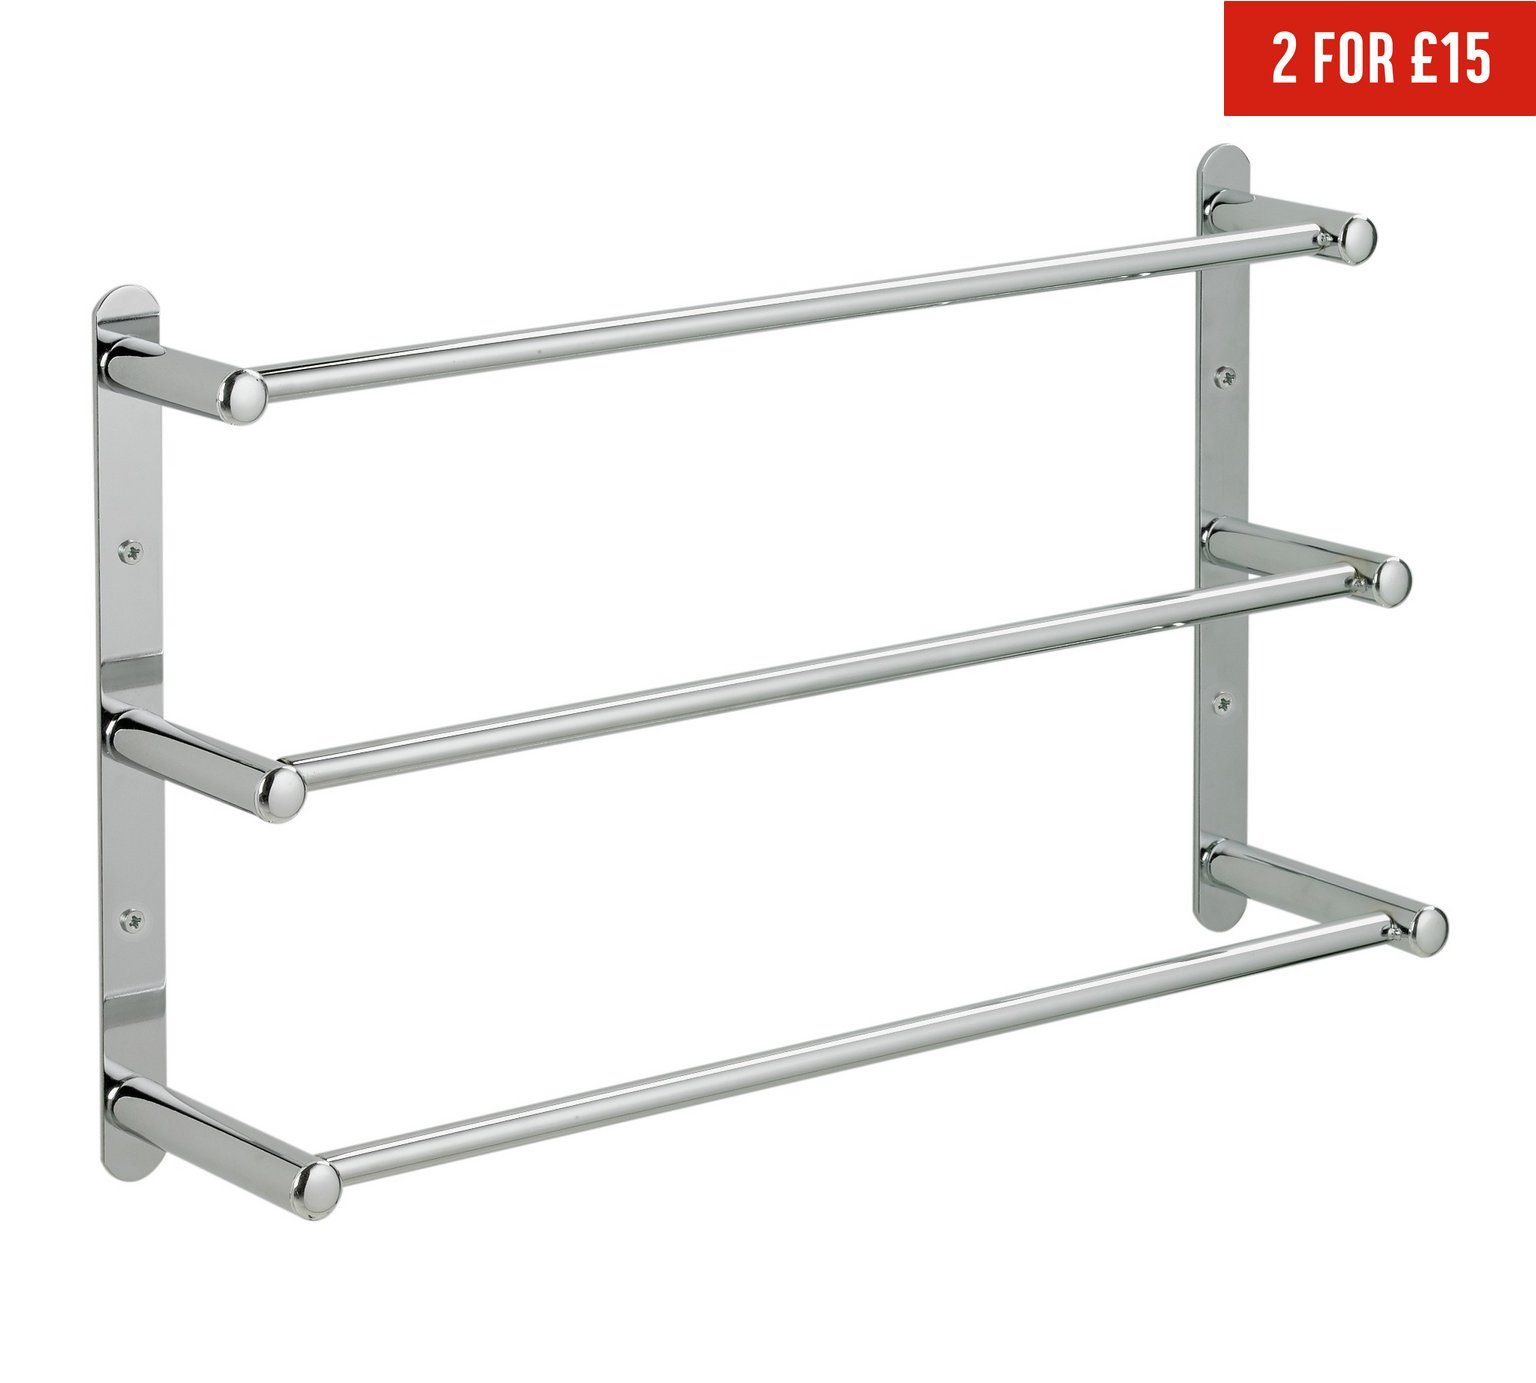 Buy Argos Home 3 Tier Wall Mounted Steel Towel Rack Towel Rails And Rings Argos Towel Rack Wall Mounted Towel Rail Towel Rail